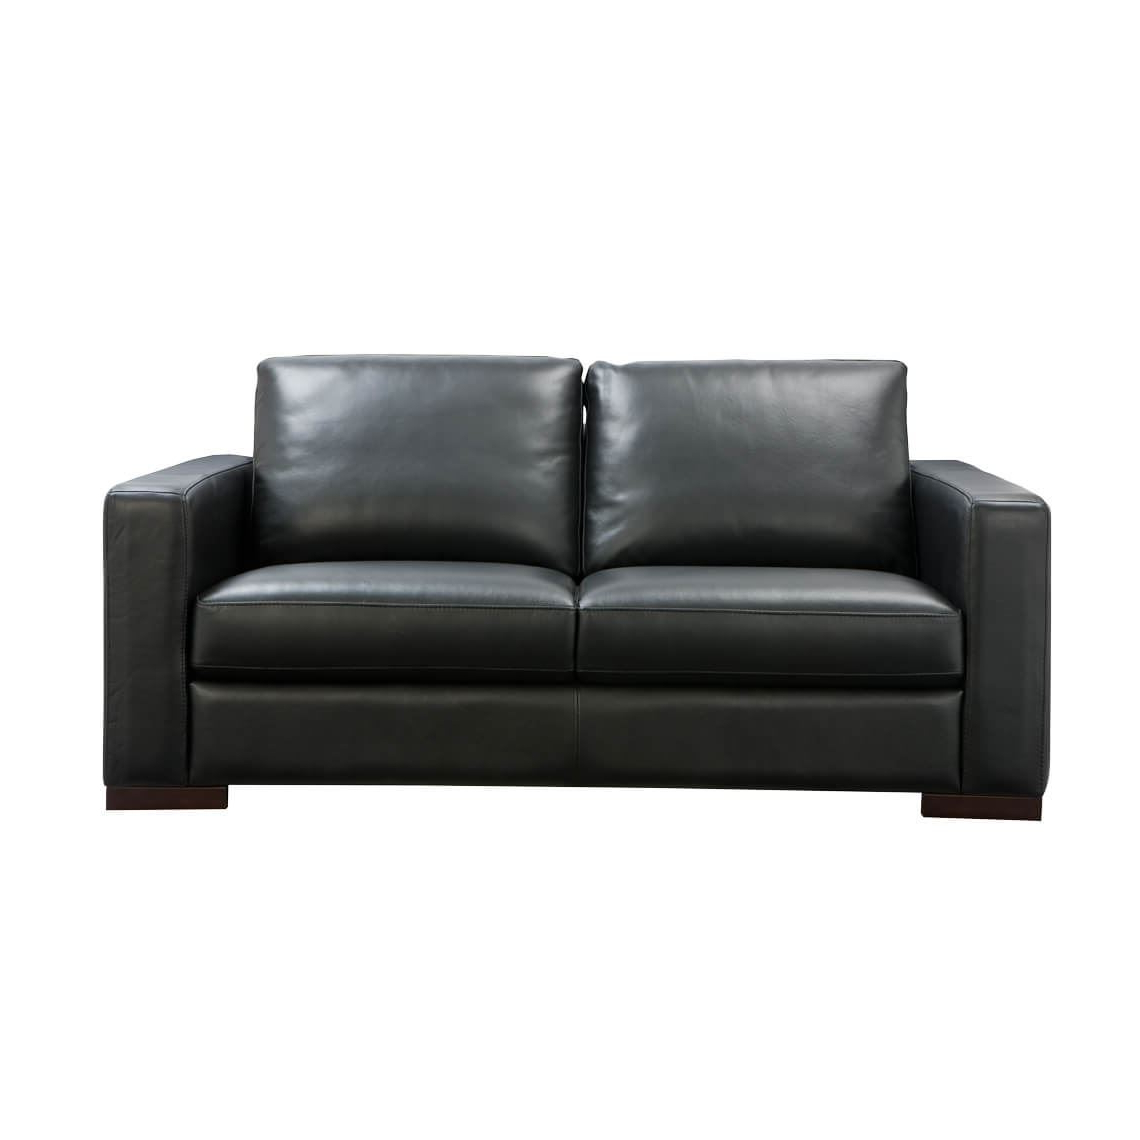 Best And Newest Freedom Furniture And Homewares Regarding Tate Arm Sofa Chairs (Gallery 20 of 20)